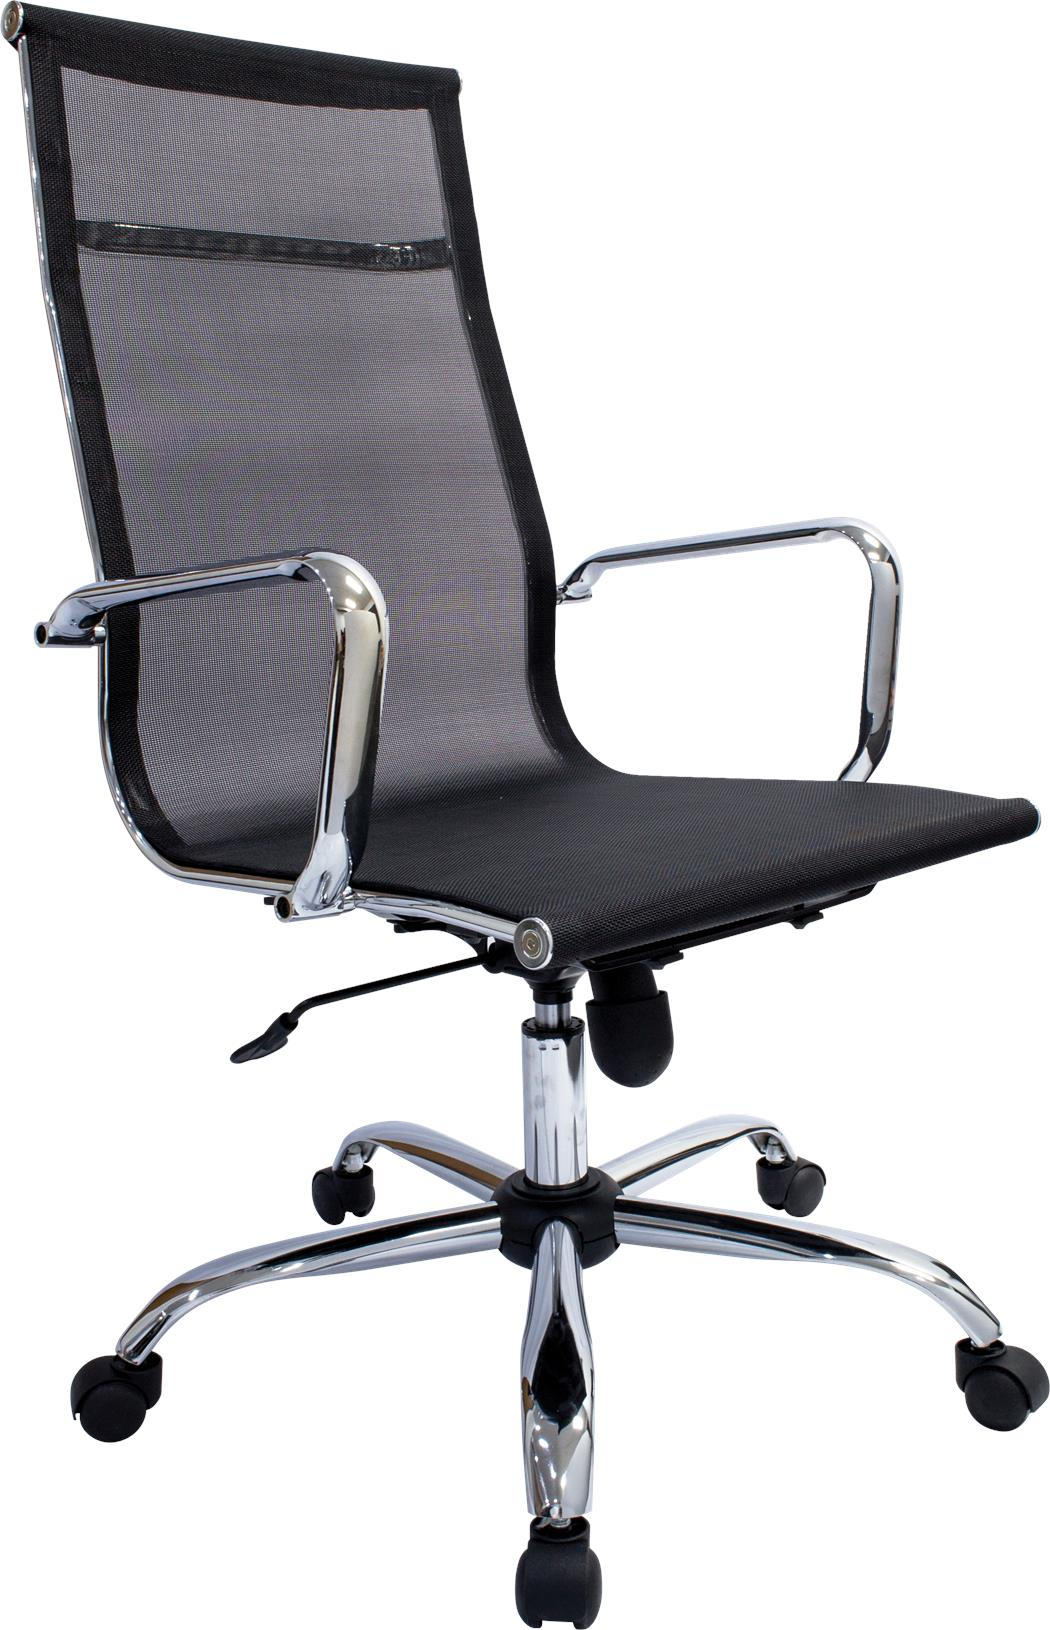 Executive Highback Mesh Office Chair VT 01